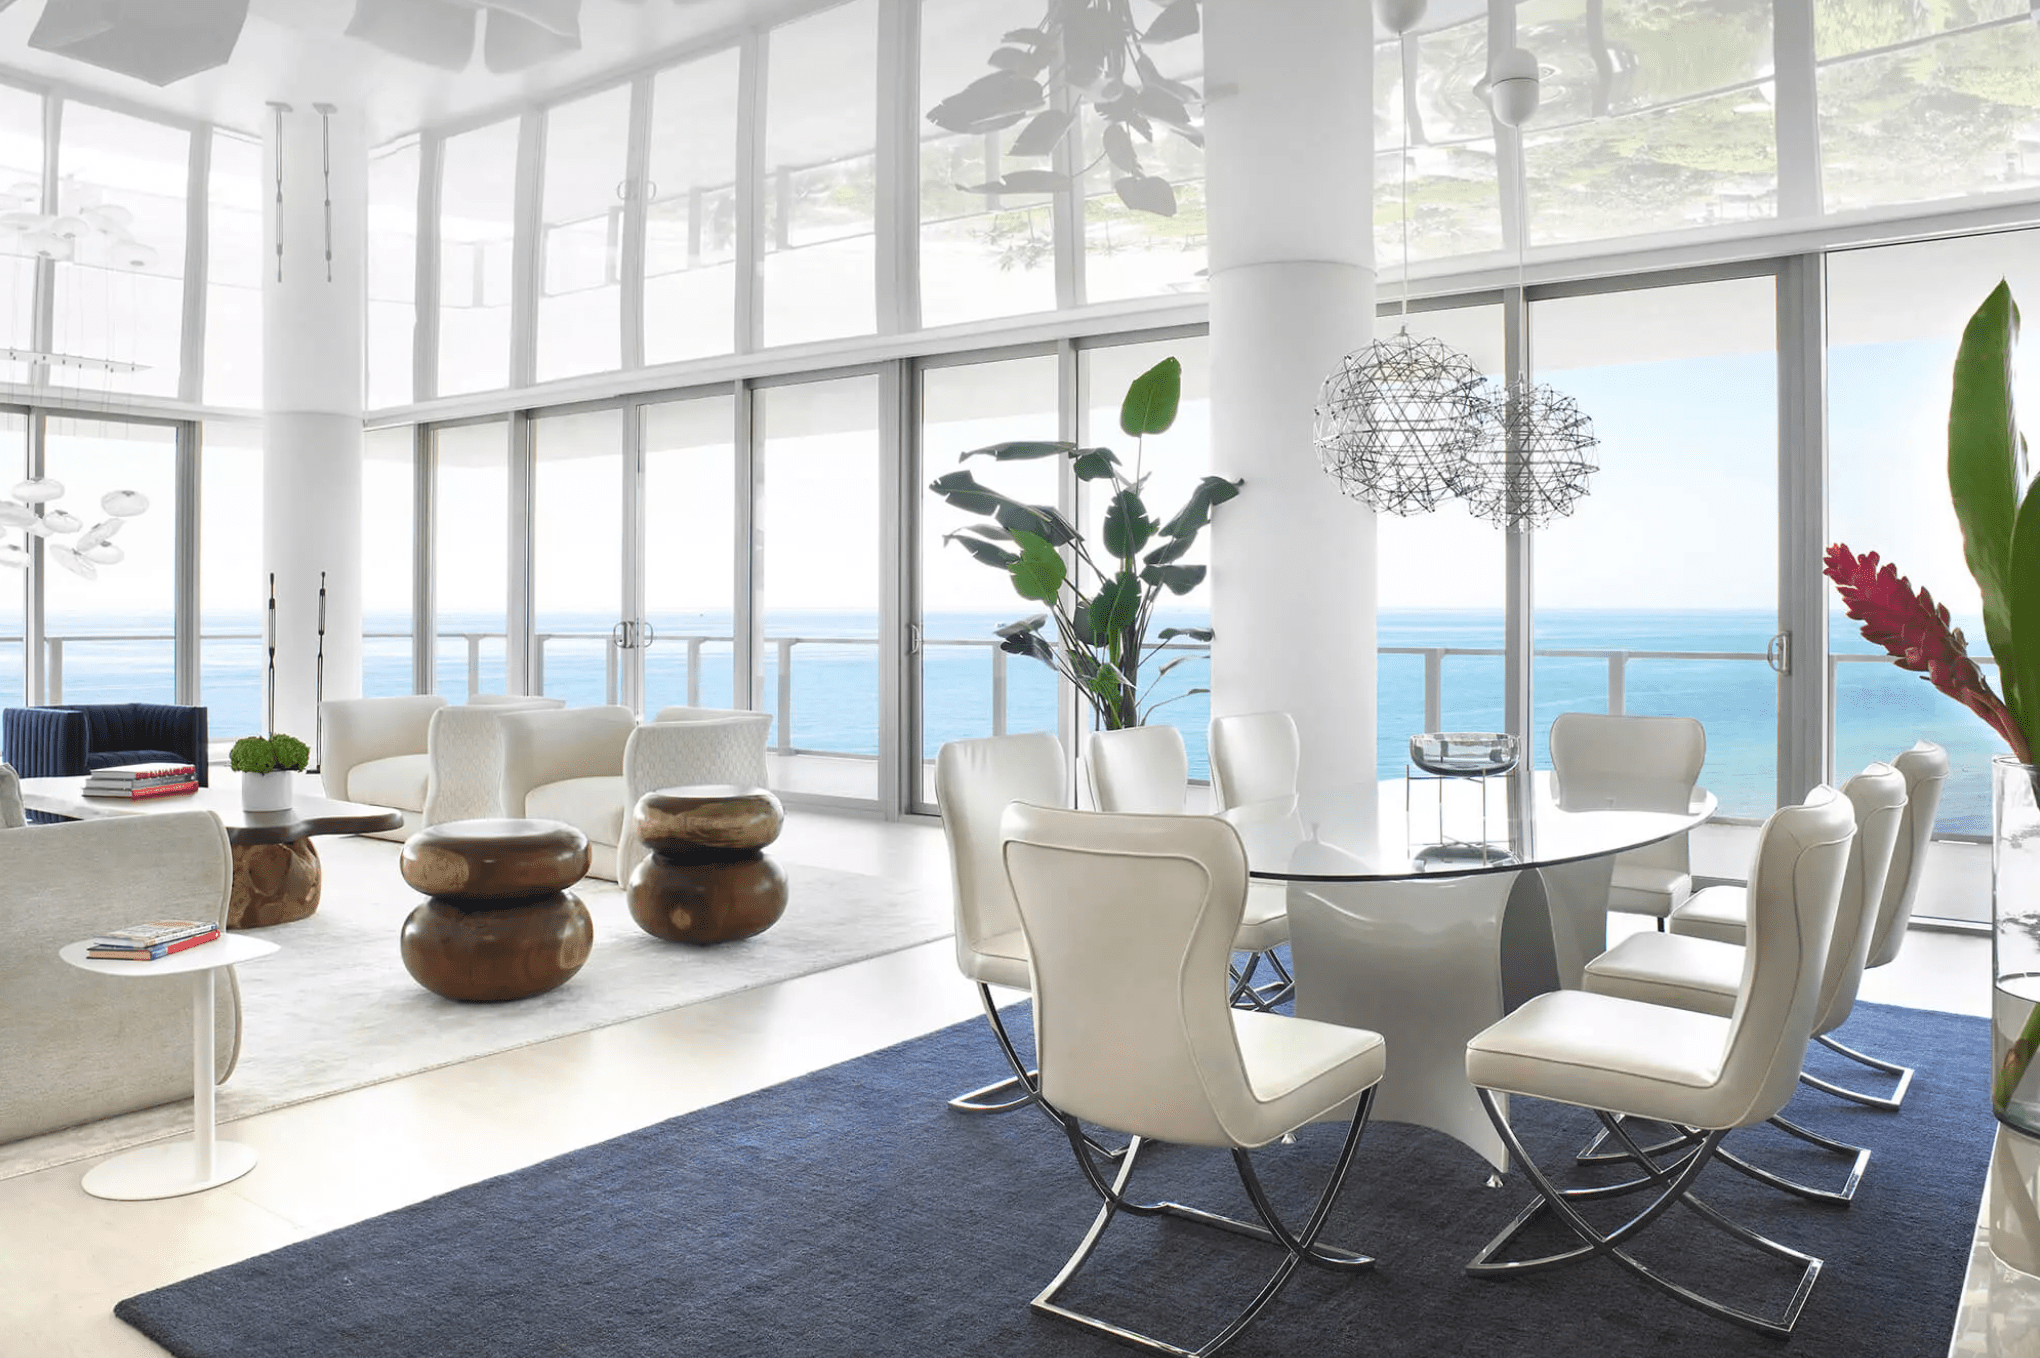 An open-concept space filled with white and ivory pieces